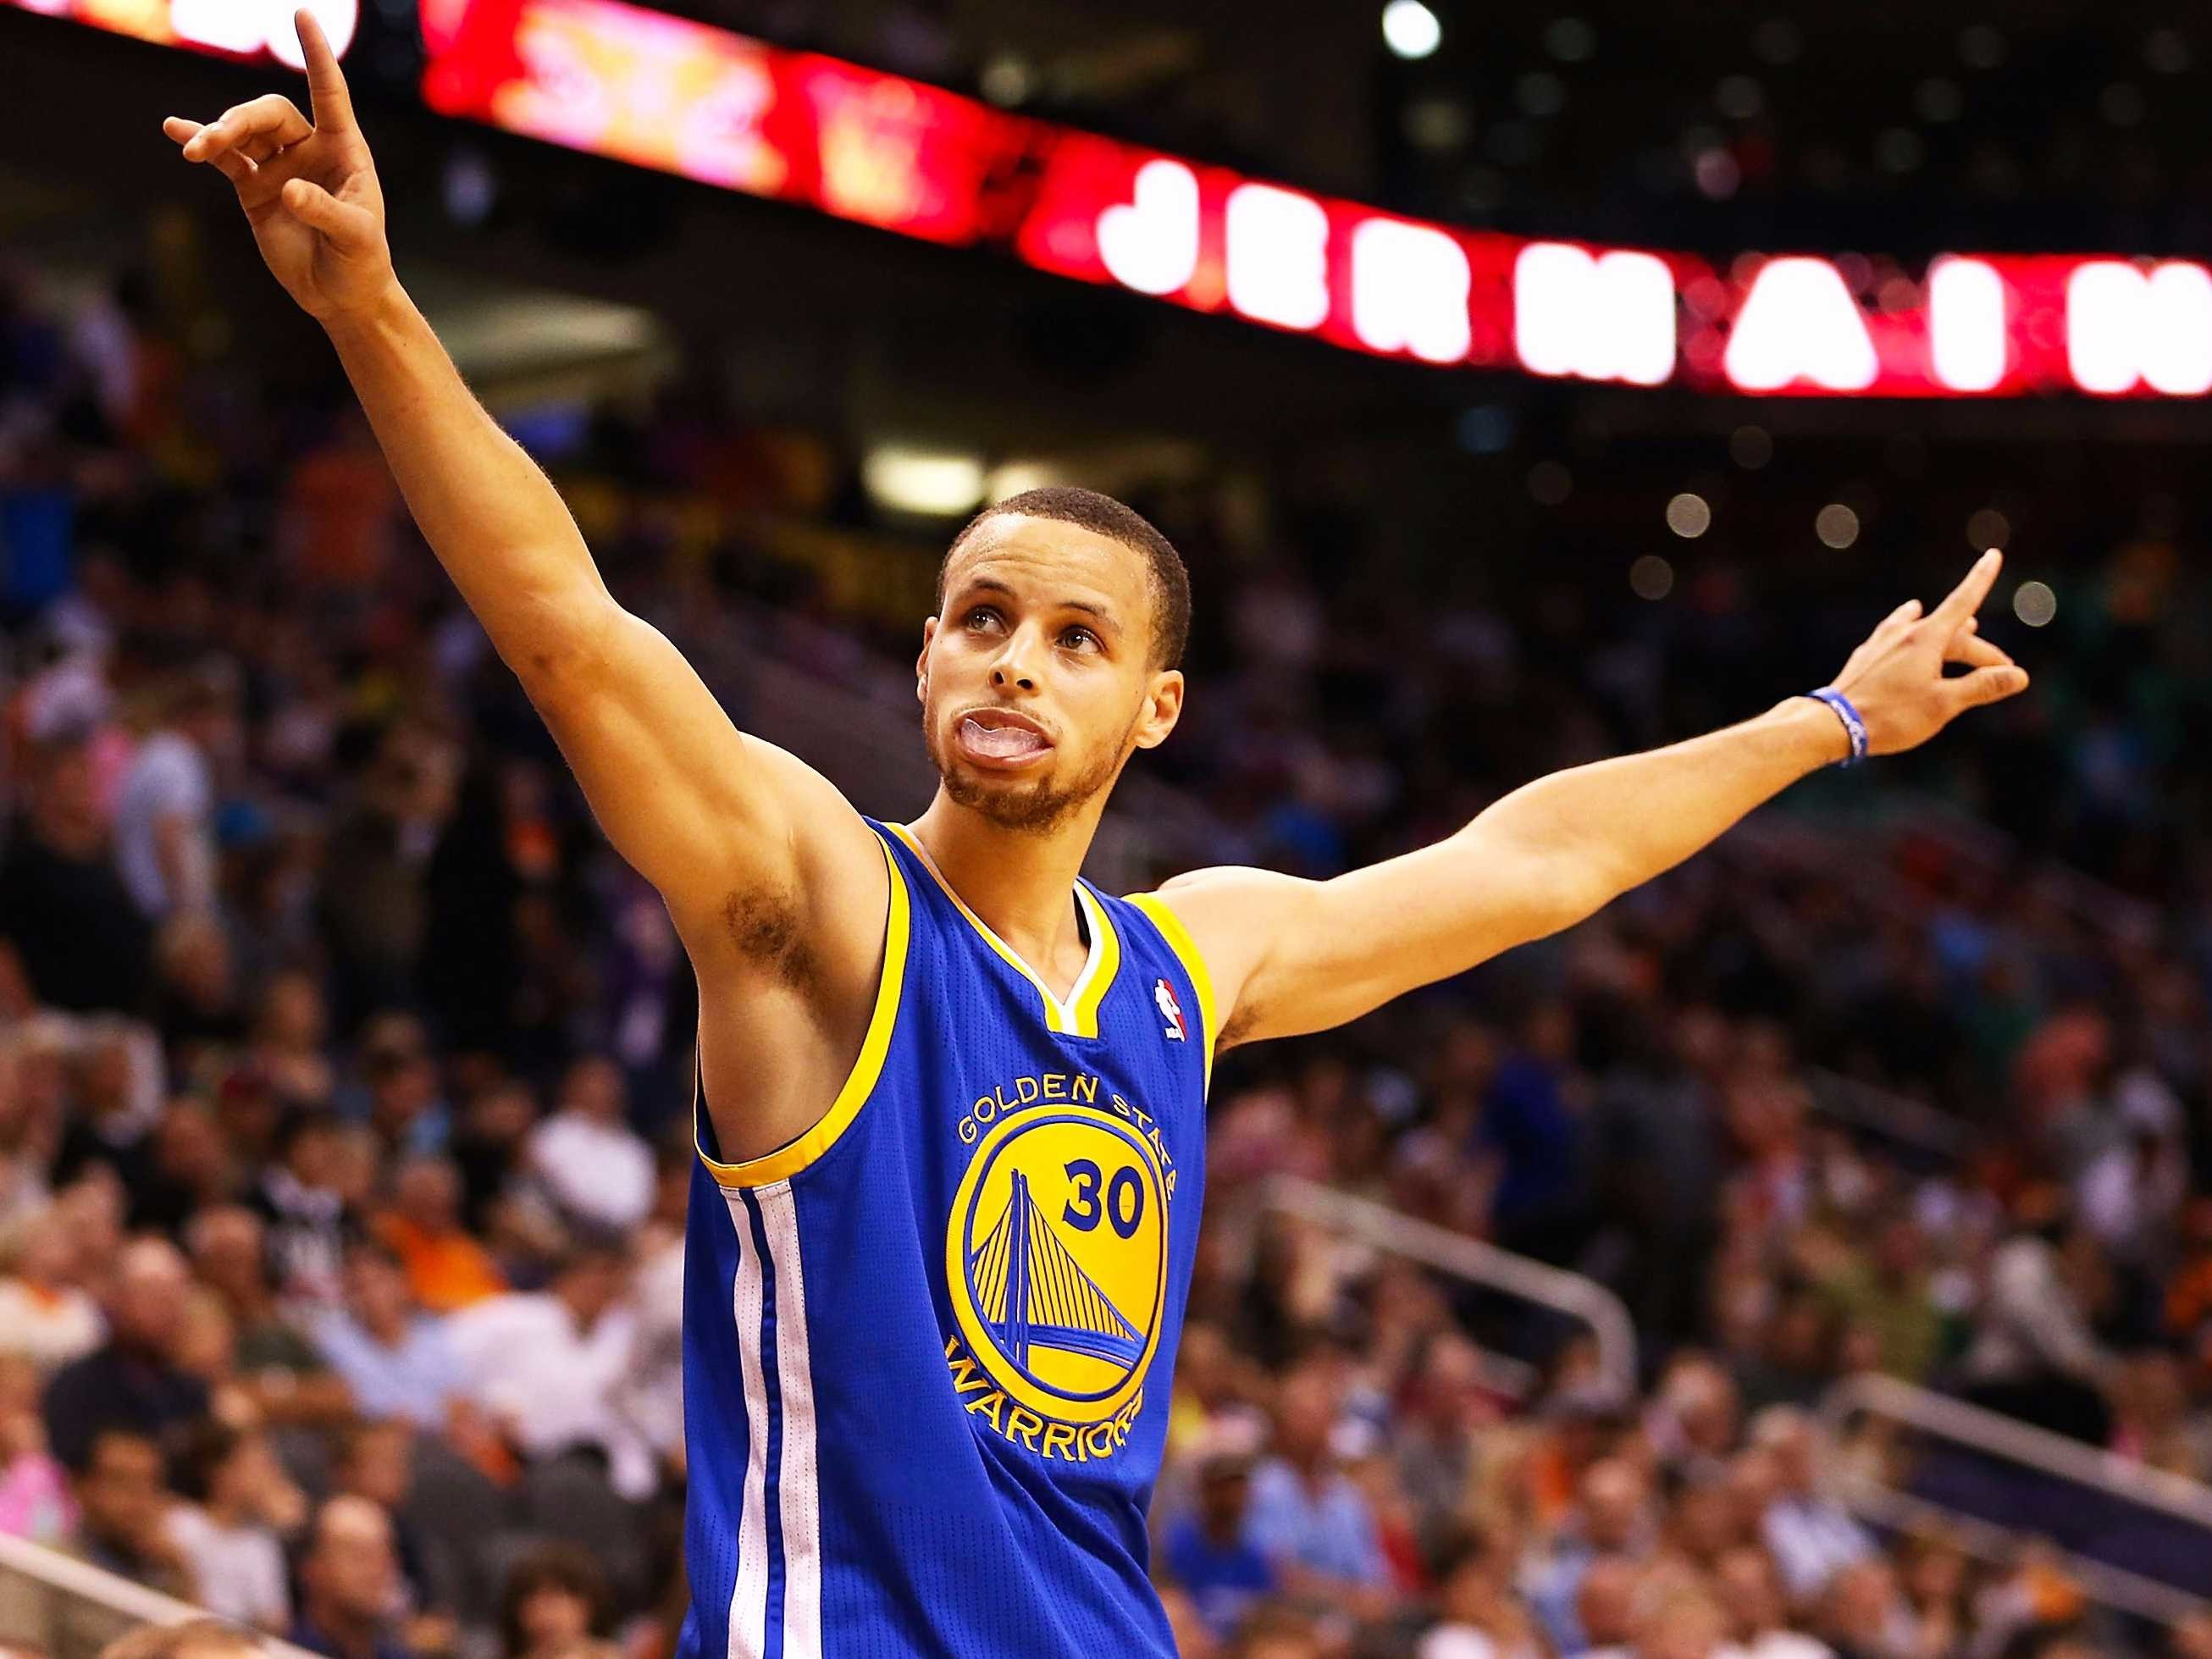 Stephen-Curry-HD-Images-12-by-donnarowland7